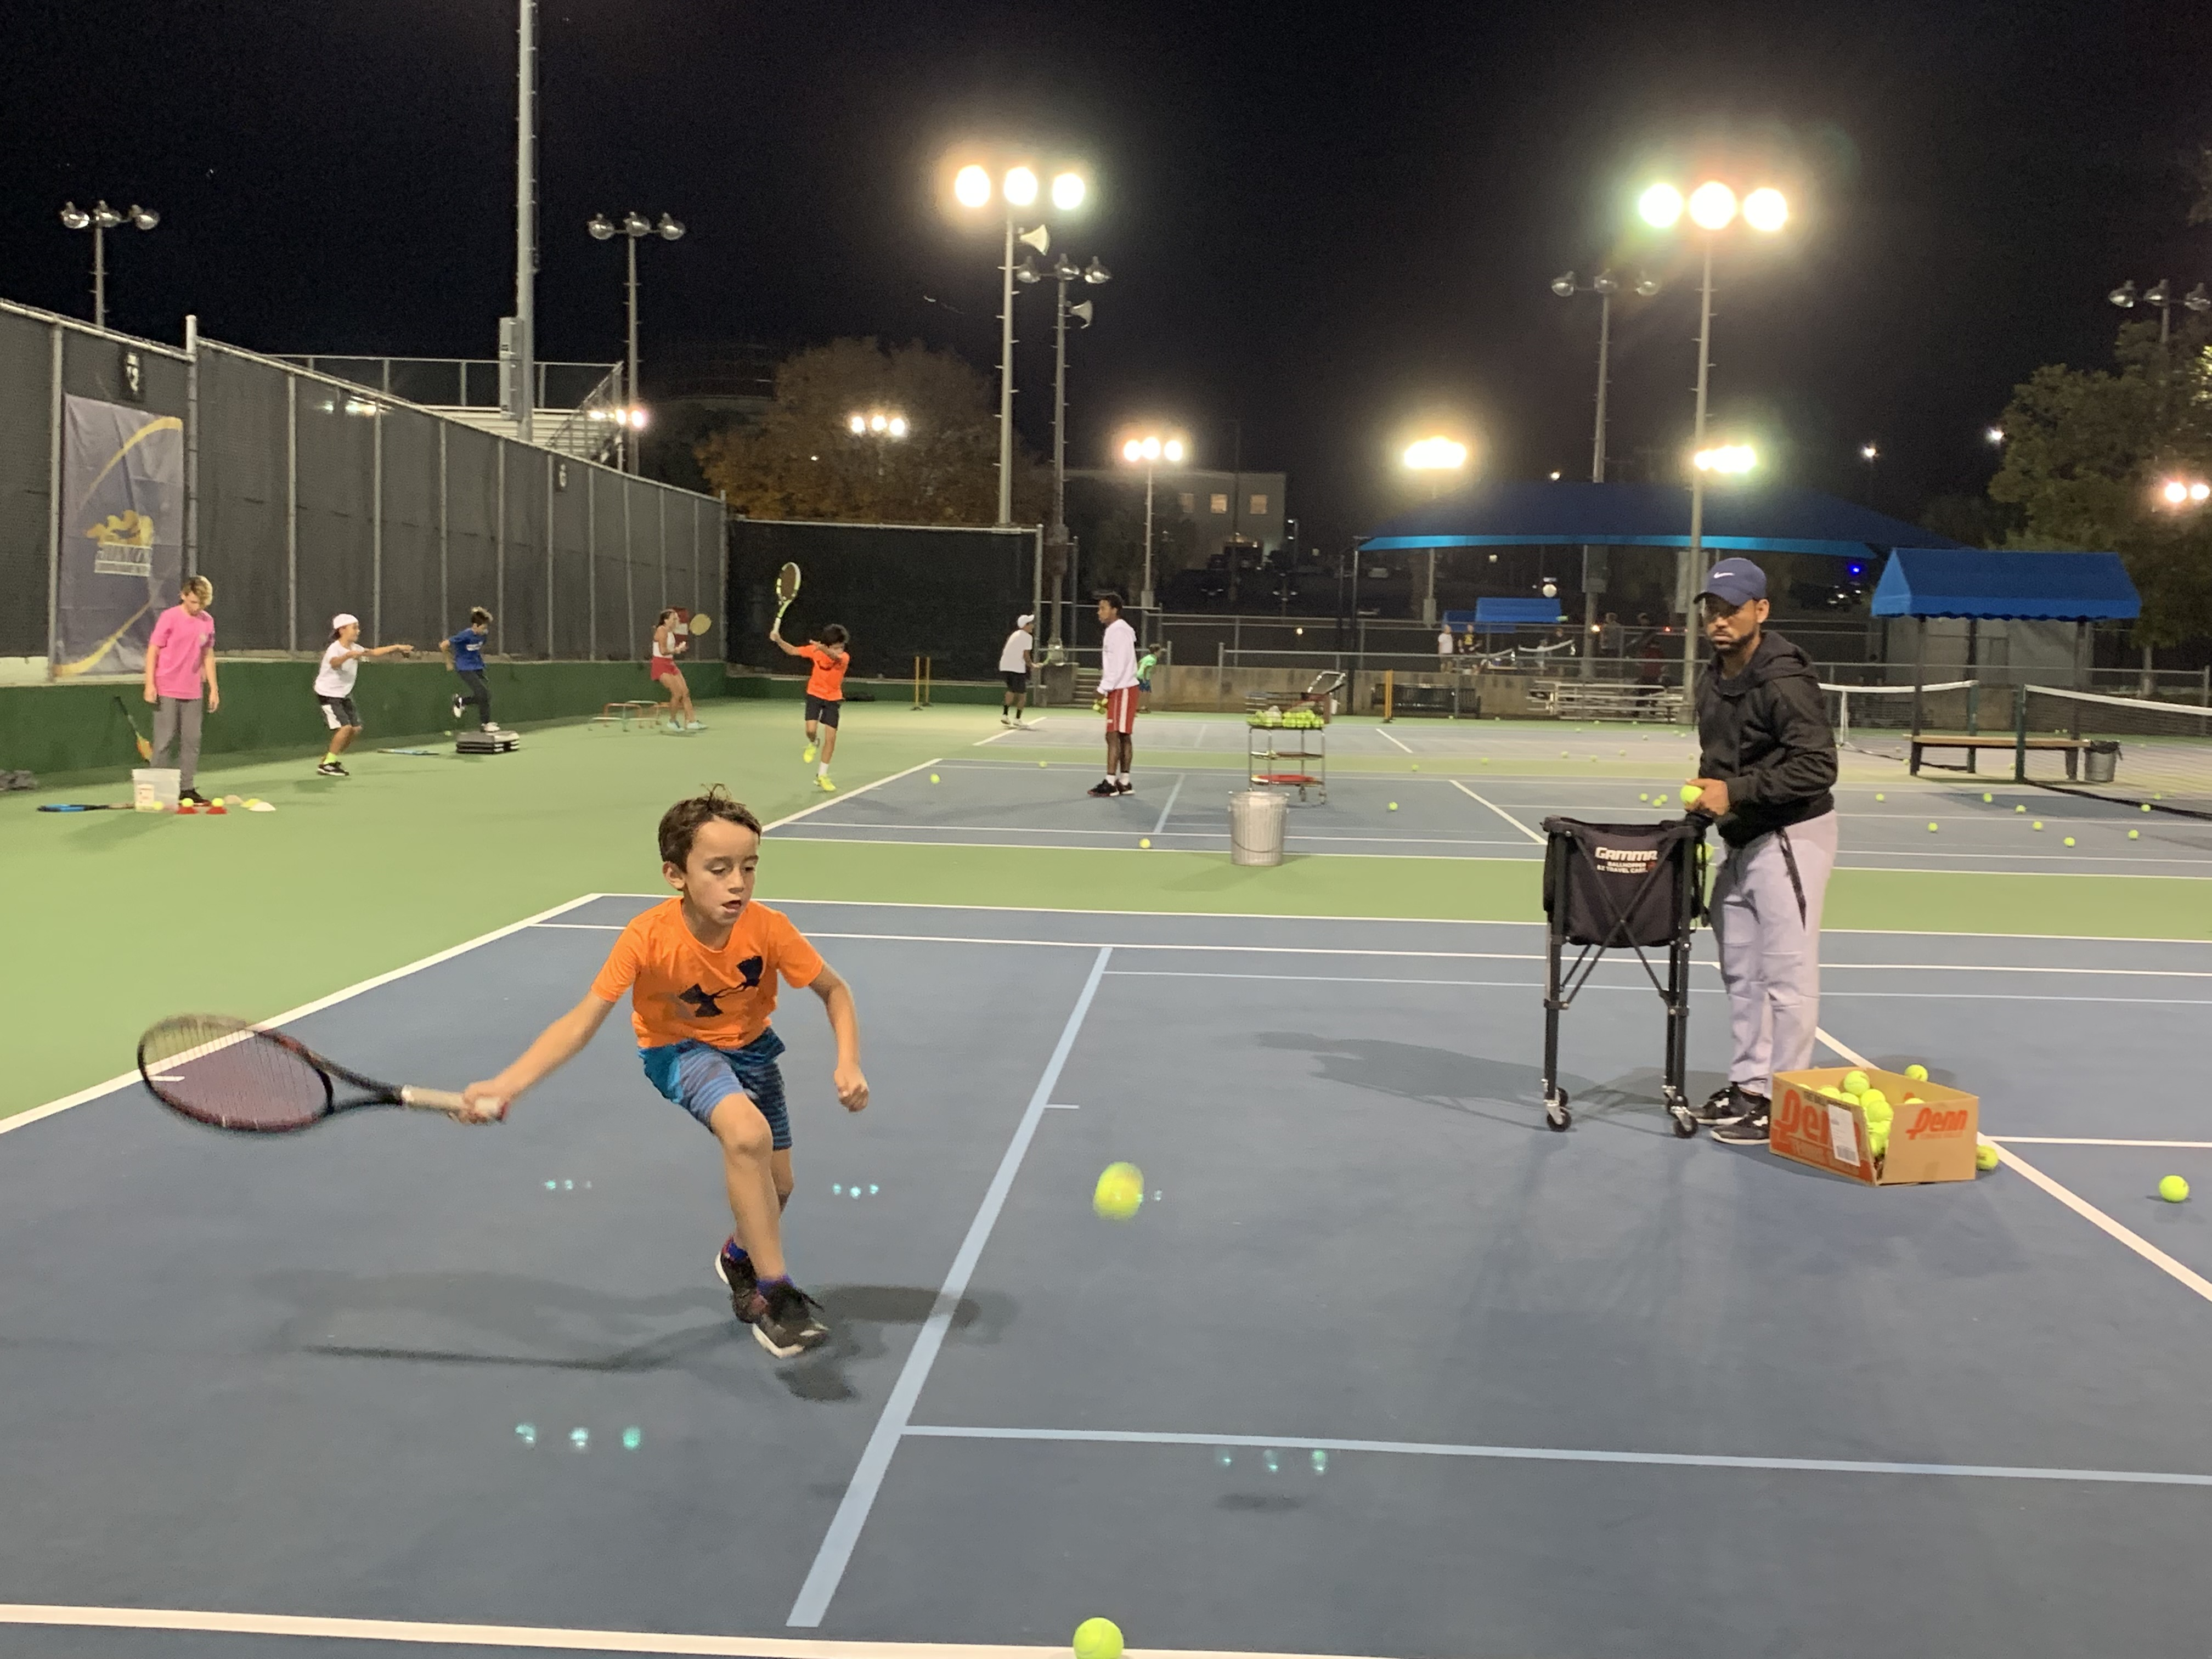 Youth tennis class